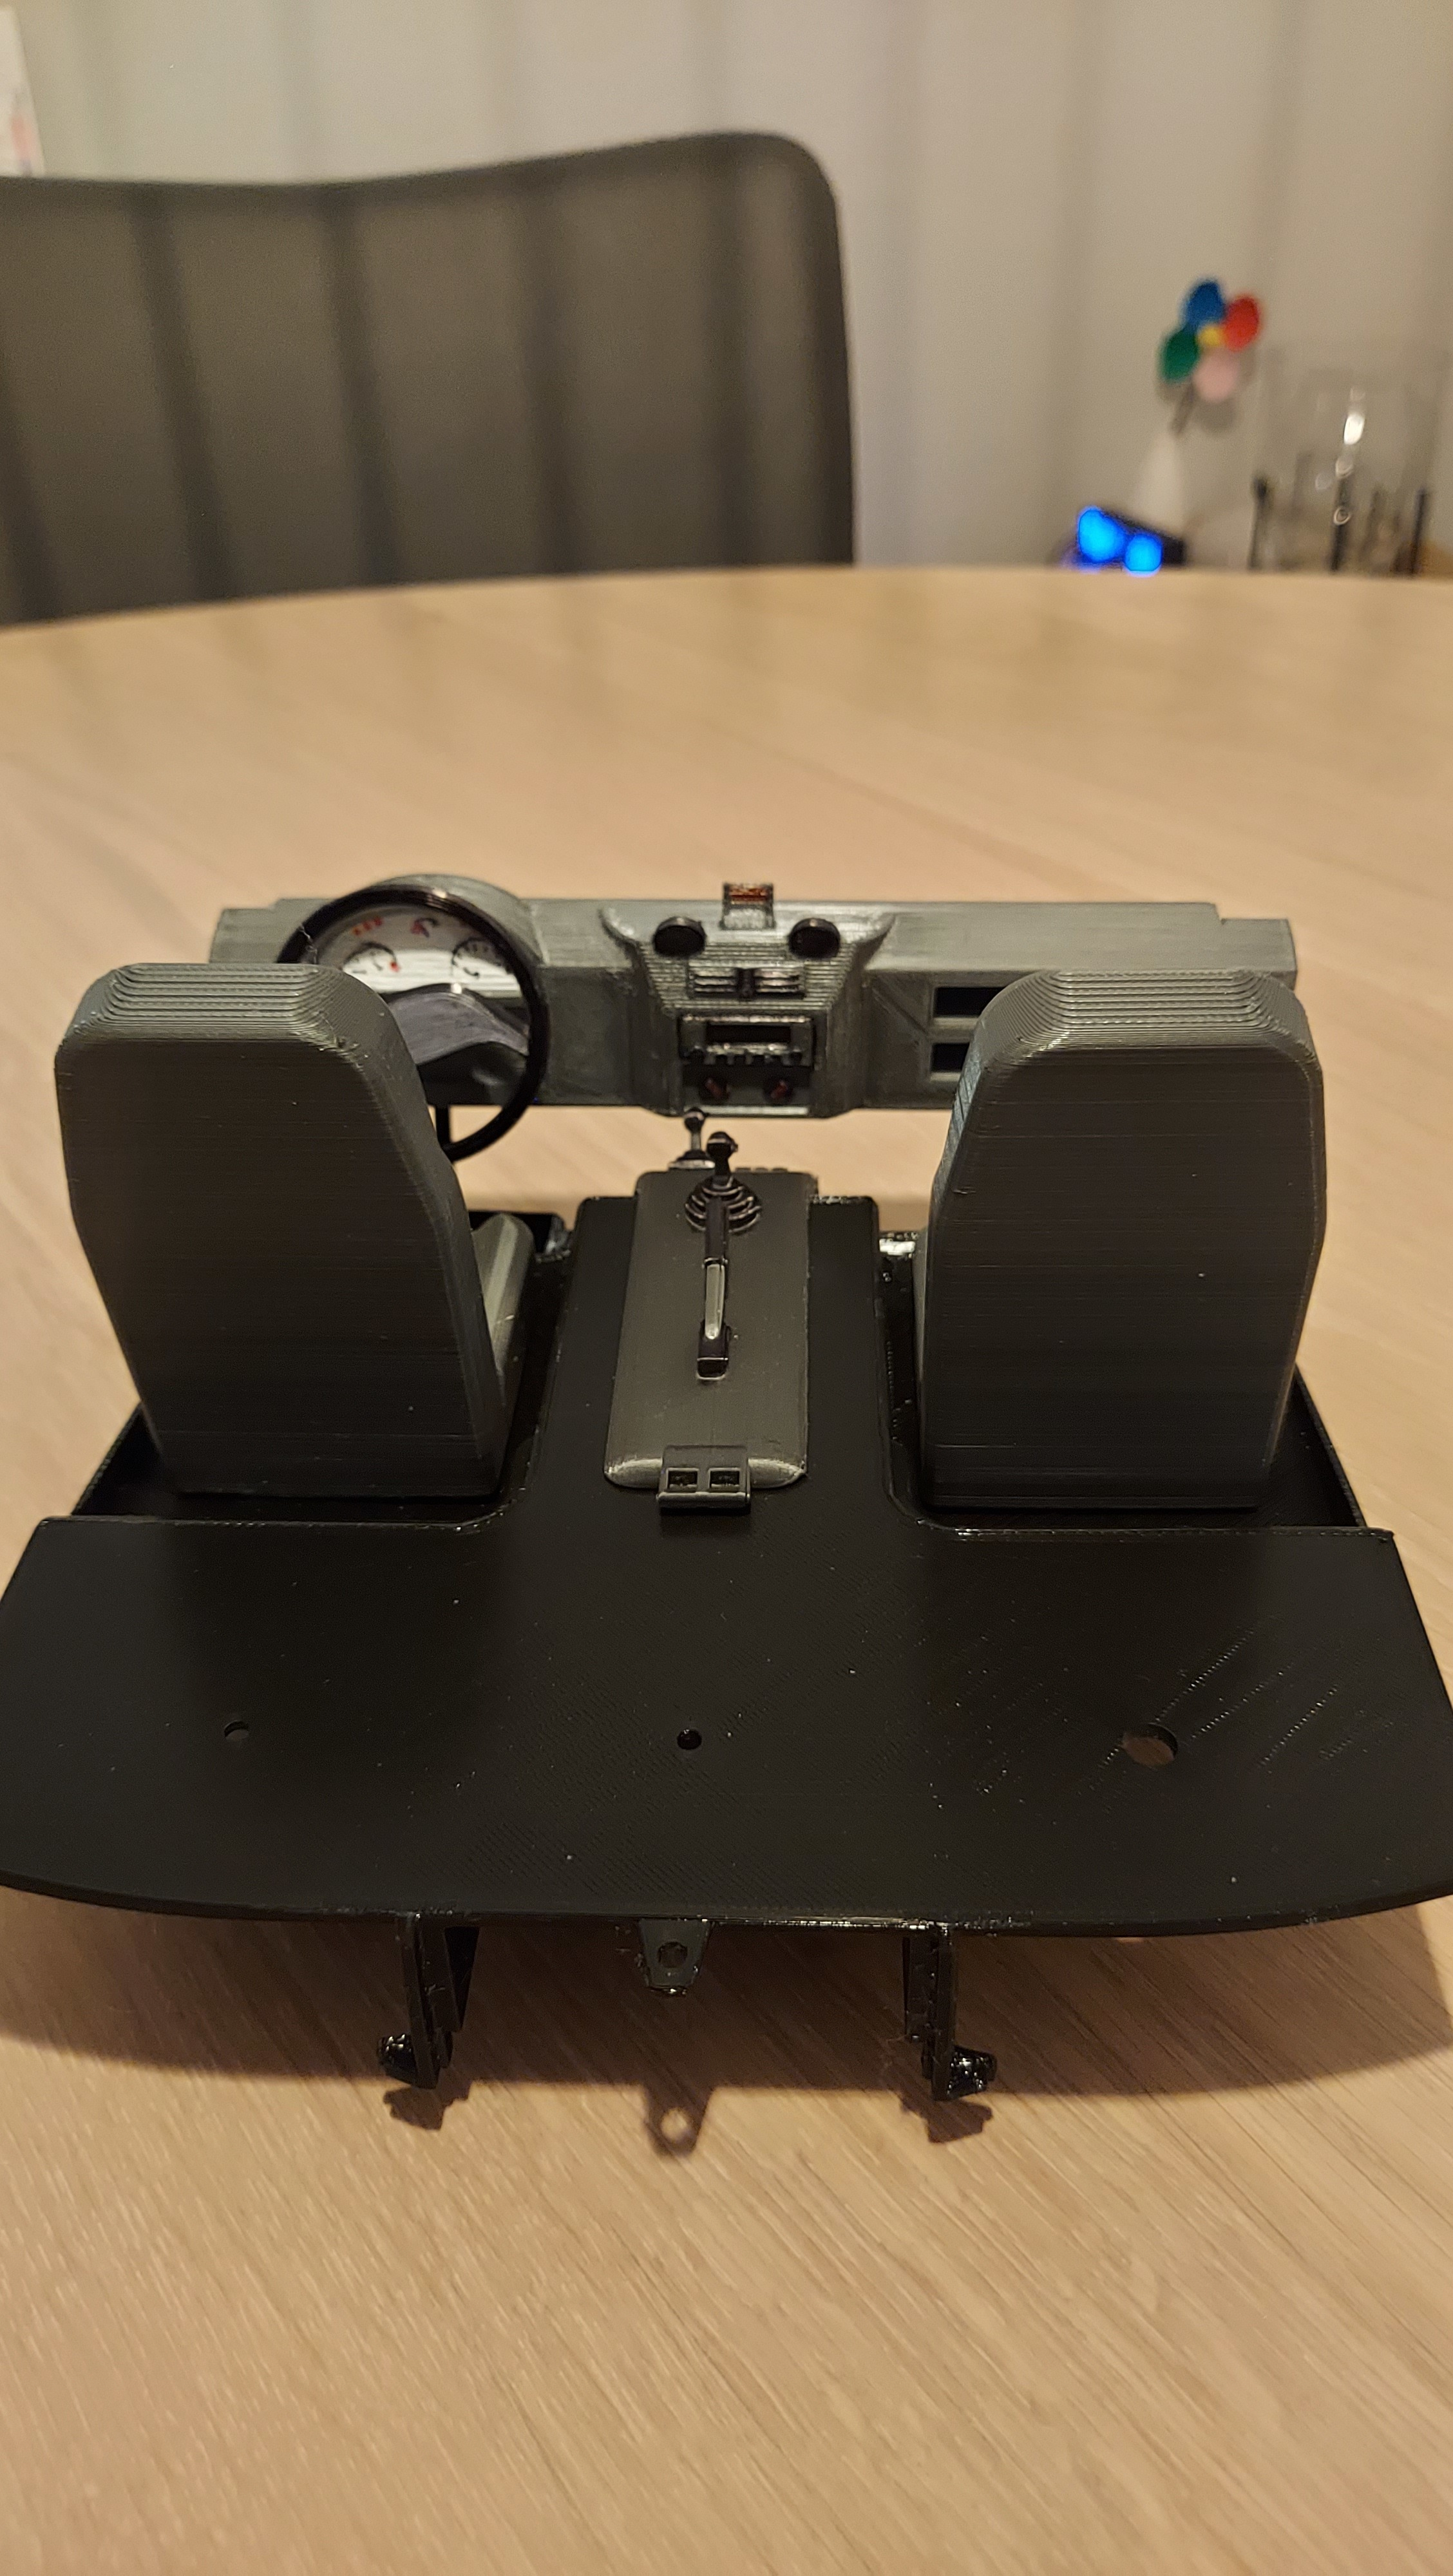 Download STL file Passenger compartment support for TRX4 RC 1/10 chassis • 3D printer object, ldhscholing